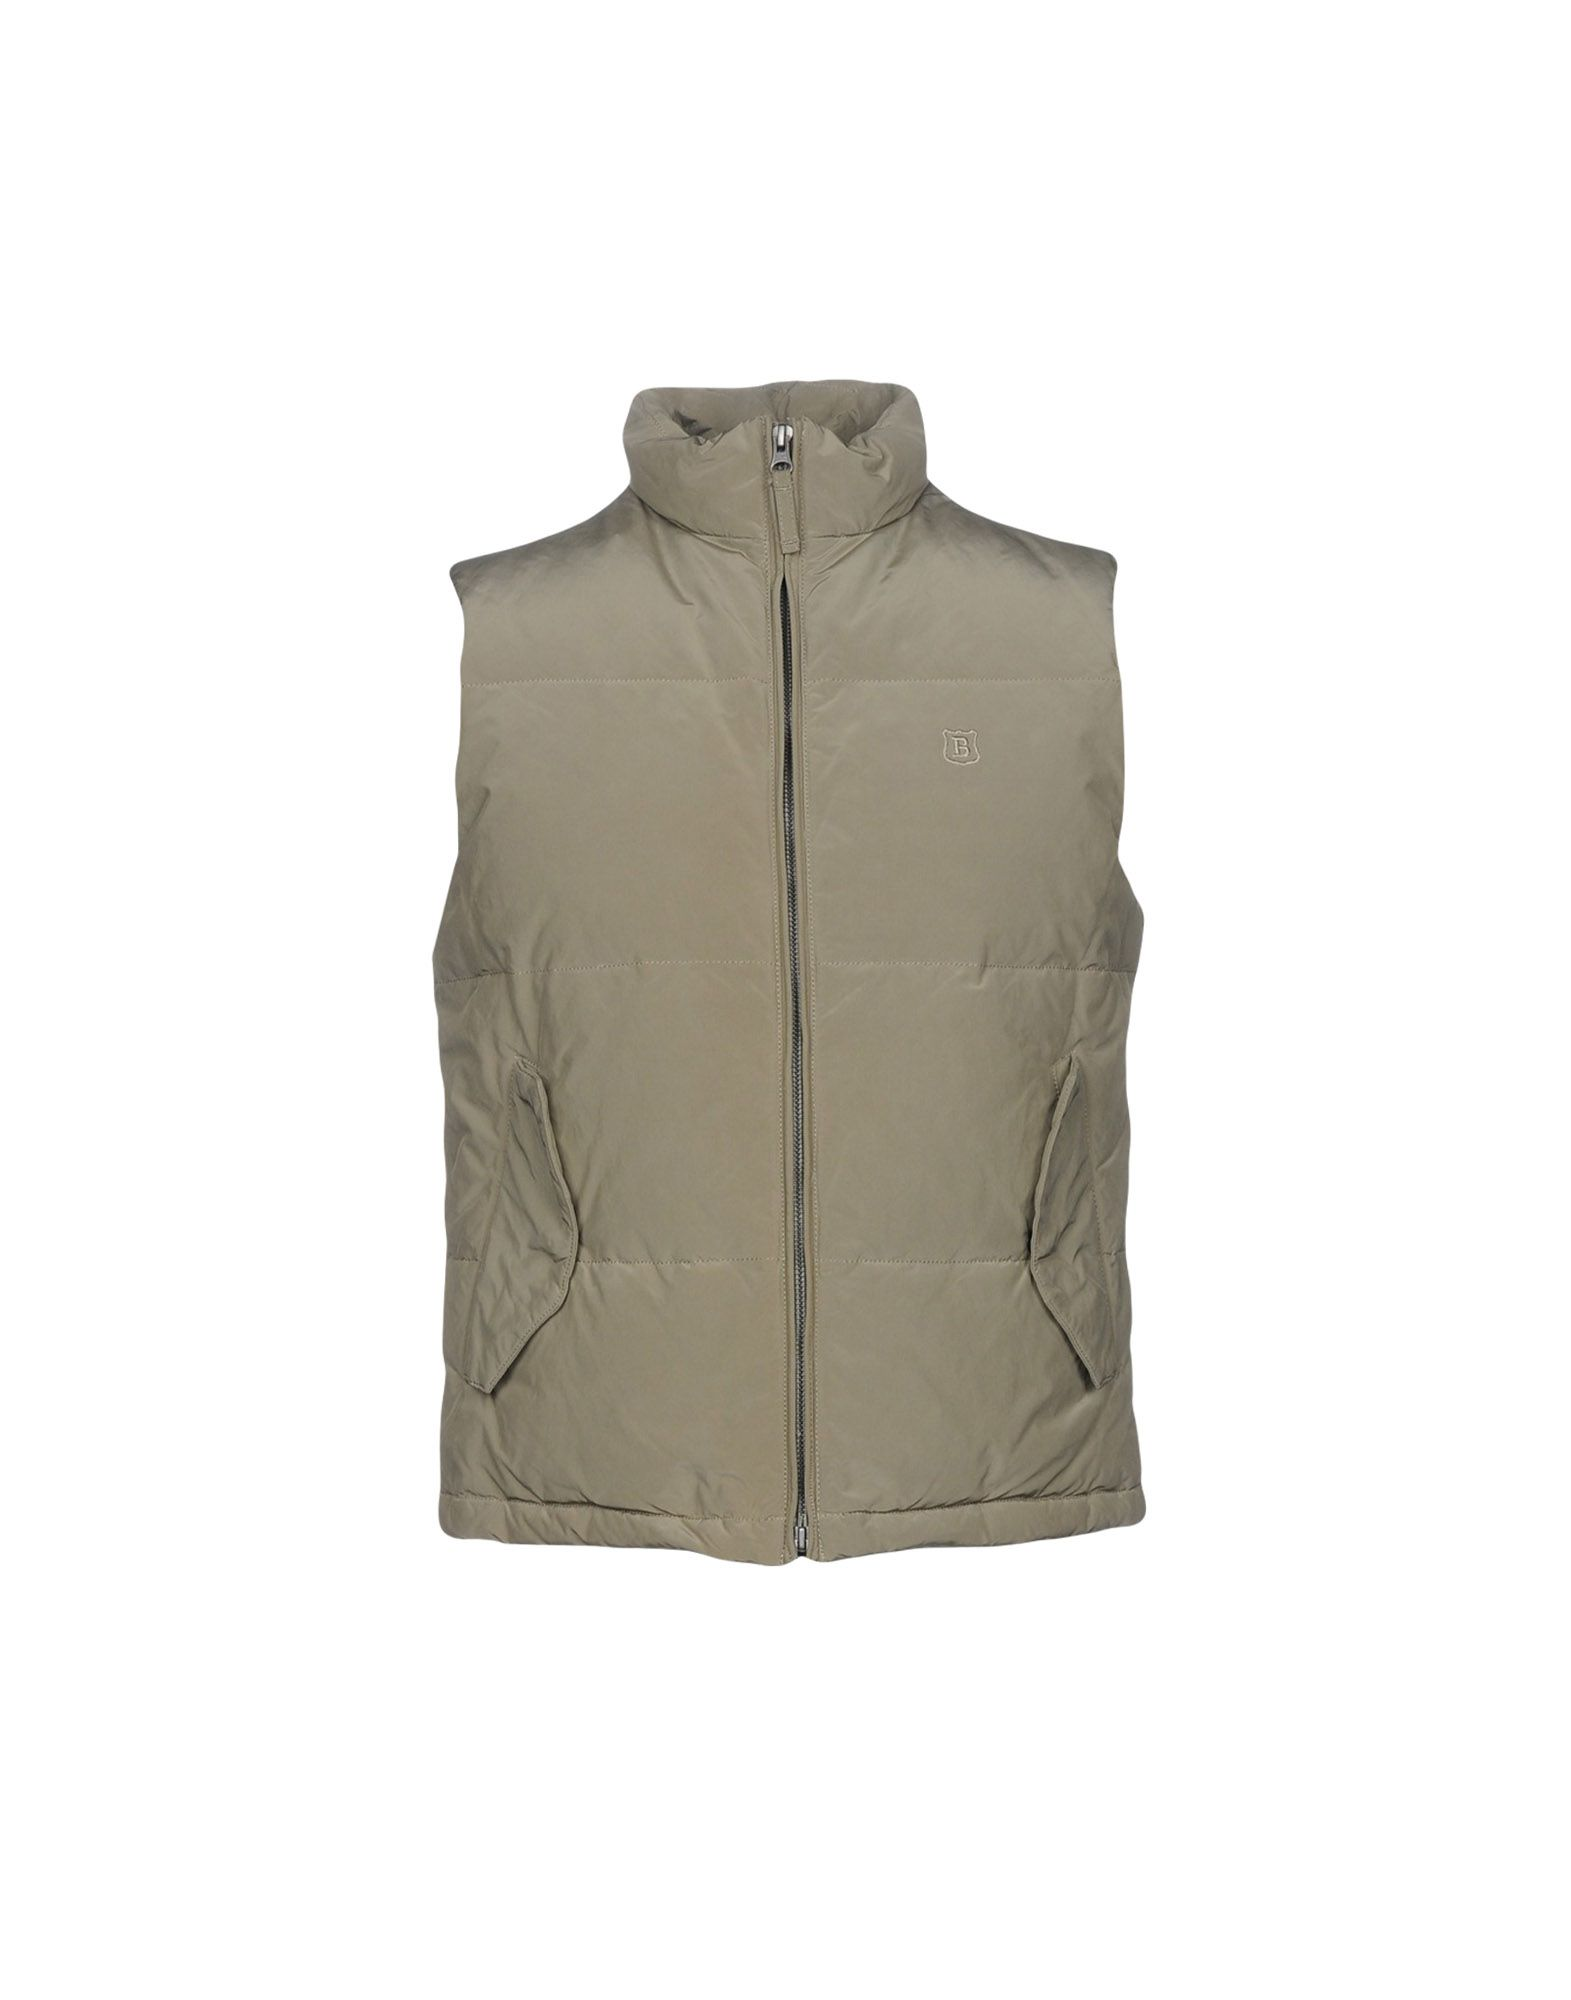 BREUER Down Jacket in Military Green